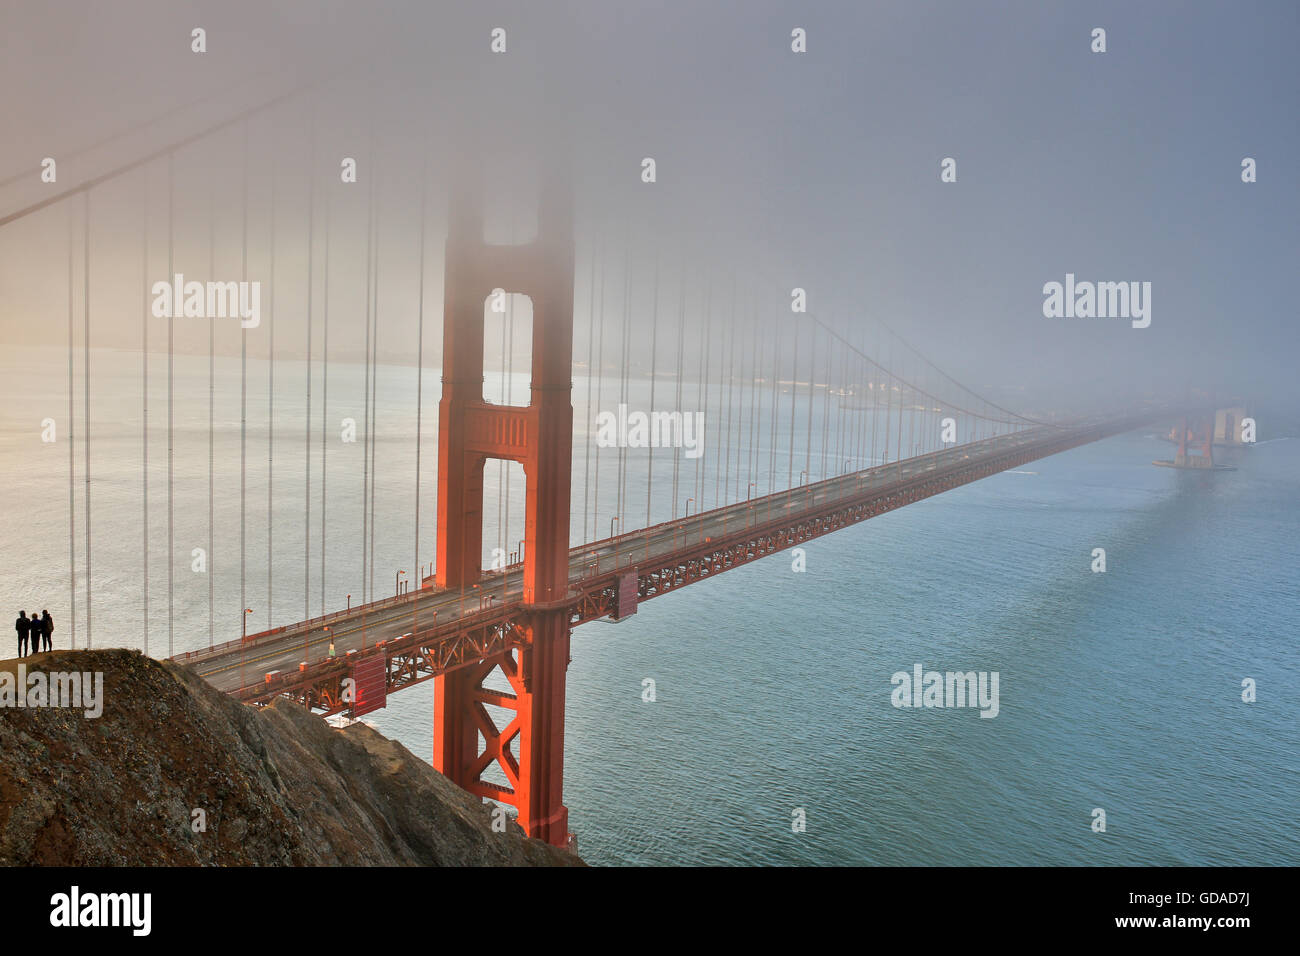 Fog, Mist, and Silhouettes. The Golden Gate Bridge, San Francisco, California, USA - Stock Image